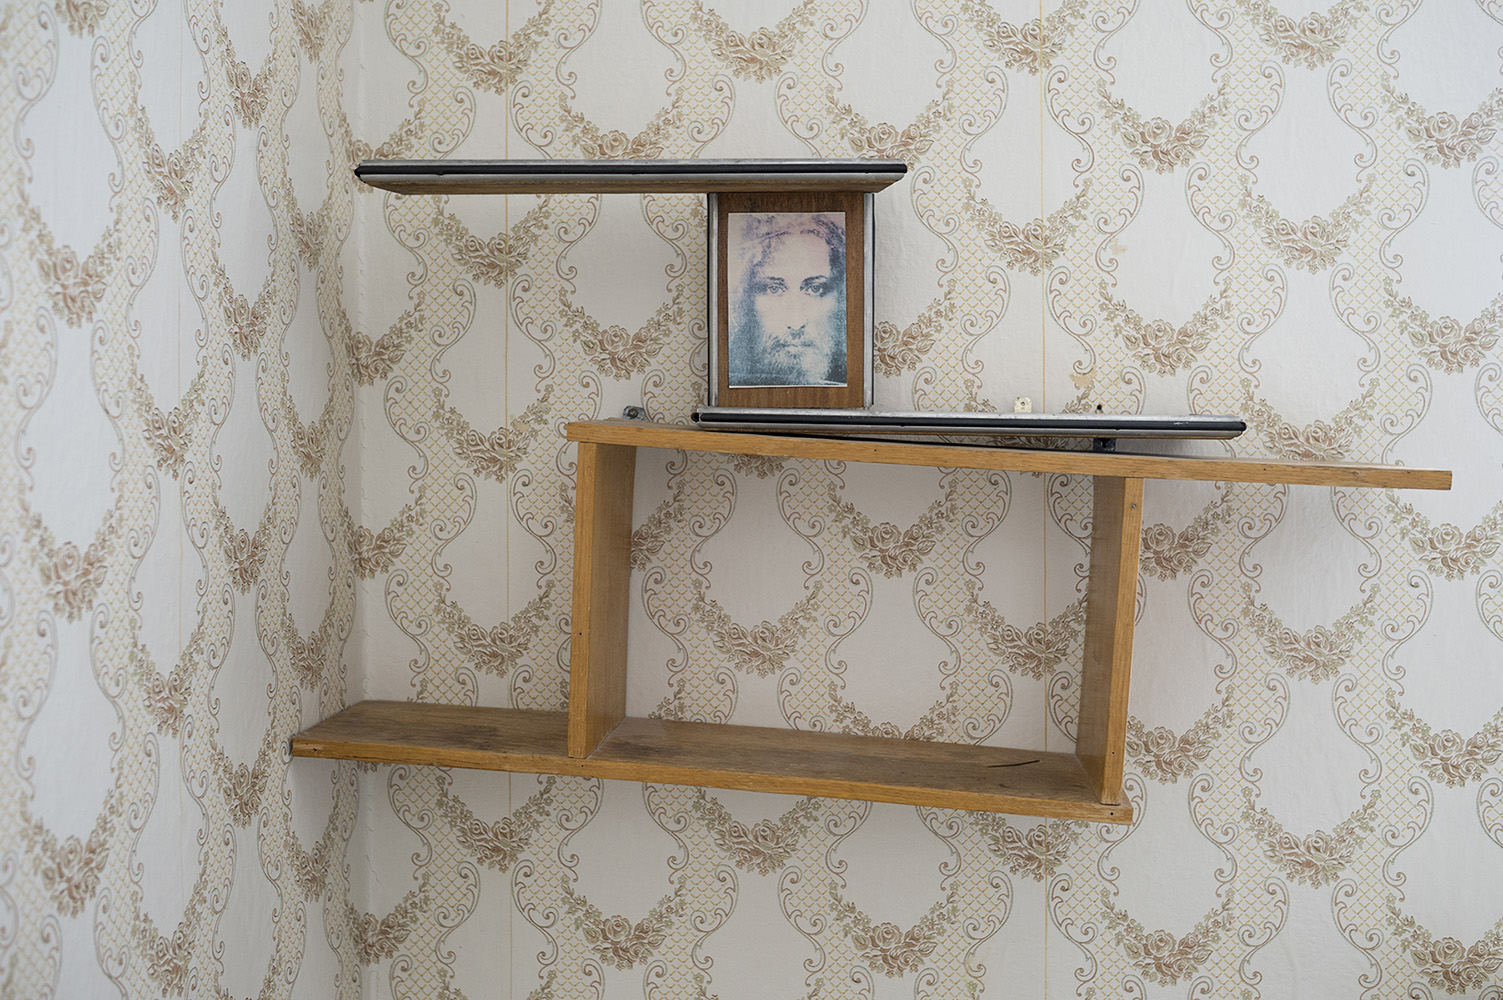 Vintage wallpaper and slanted shelves in the workers' housing in Pyramiden.Pyramiden is a Russian settlement and coal mining community on the archipelago of Svalbard, Norway. Founded by Sweden in 1910 and sold to the Soviet Union in 1927, Pyramiden was closed in 1998 and has since remained largely abandoned with most of its infrastructure and buildings still in place.